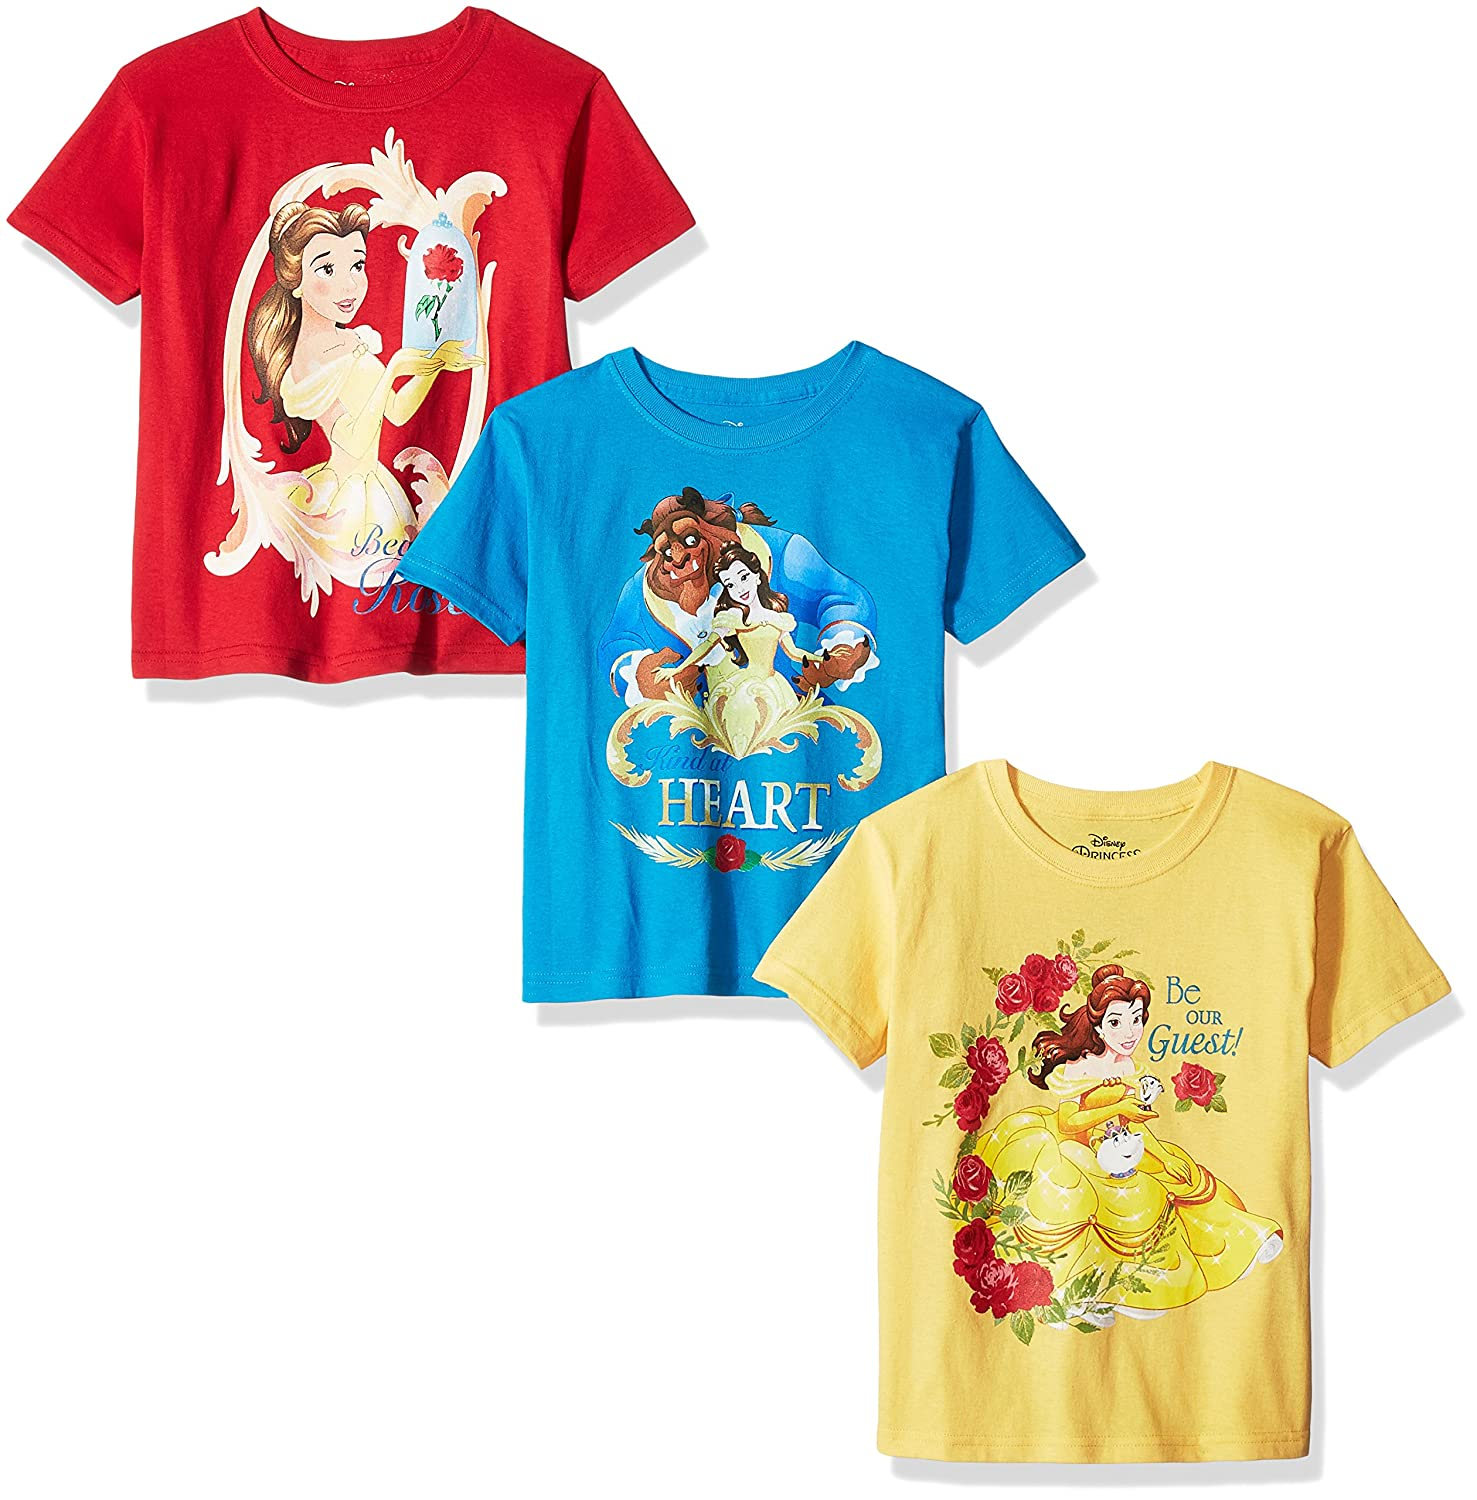 dae87dd98 Amazon.com: Disney Girls' Beauty and The Beast 3-Pack Short Sleeve T-Shirts:  Clothing